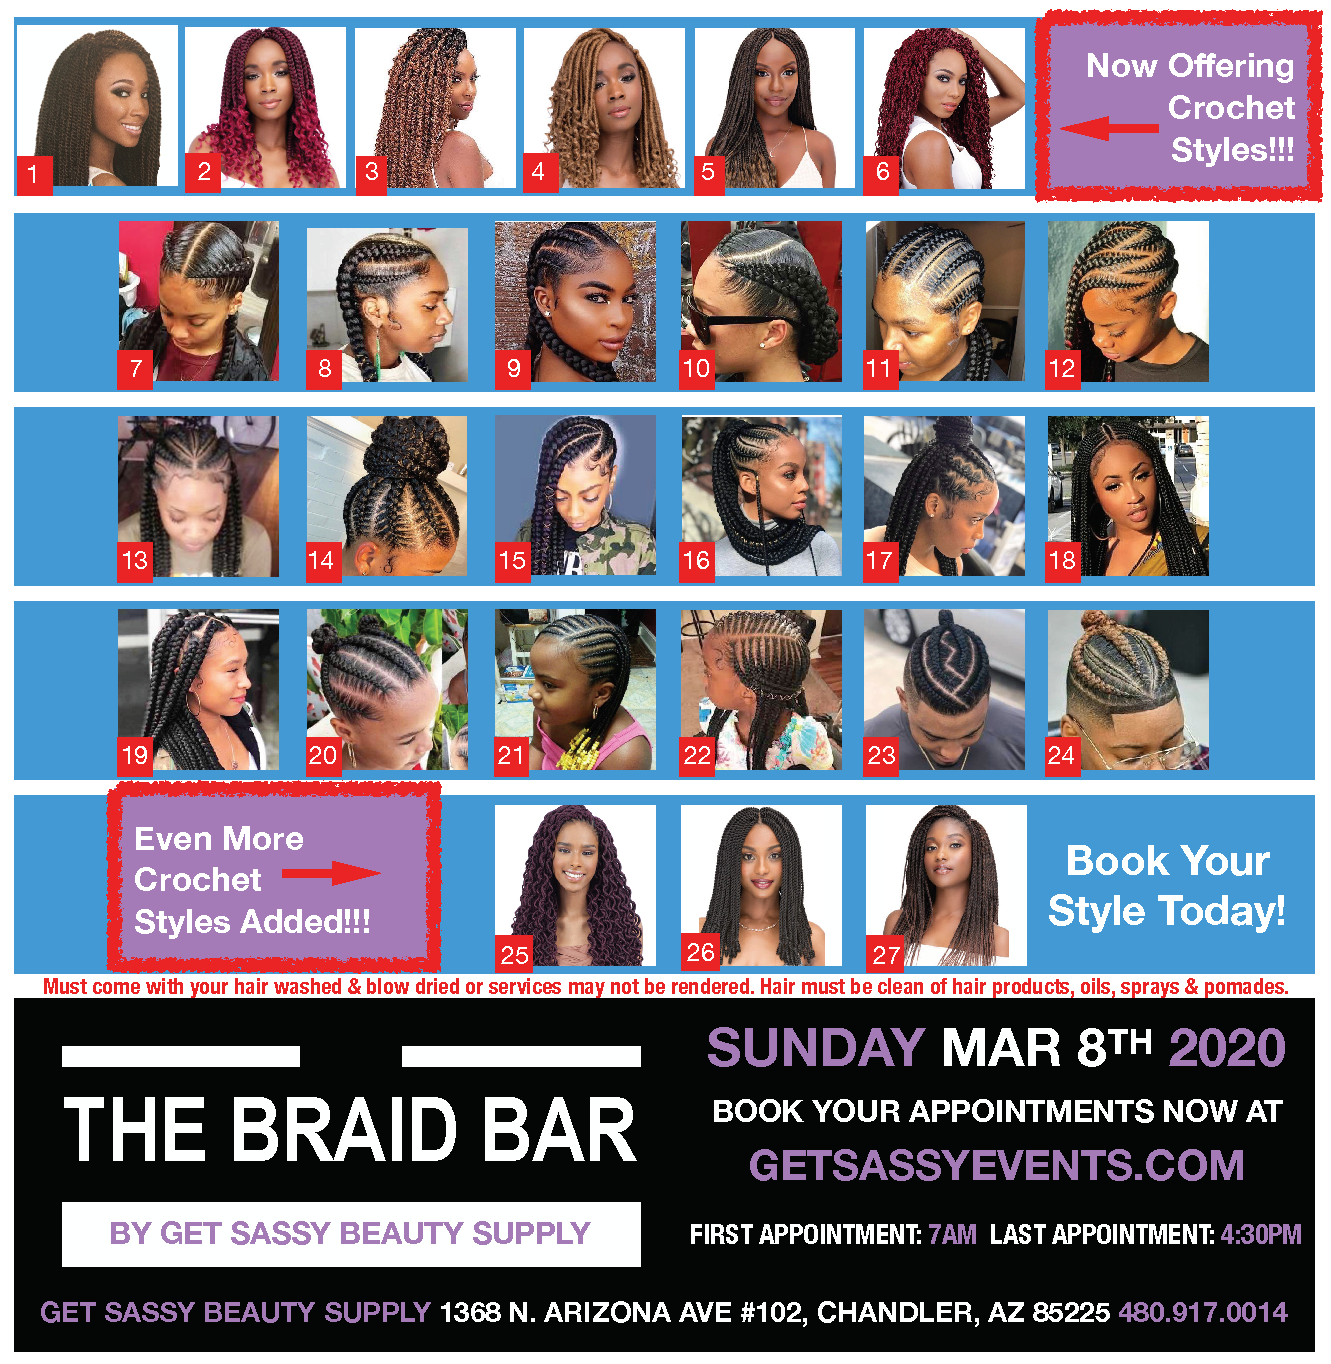 braid-bar-flyer-8mar20-2-.png